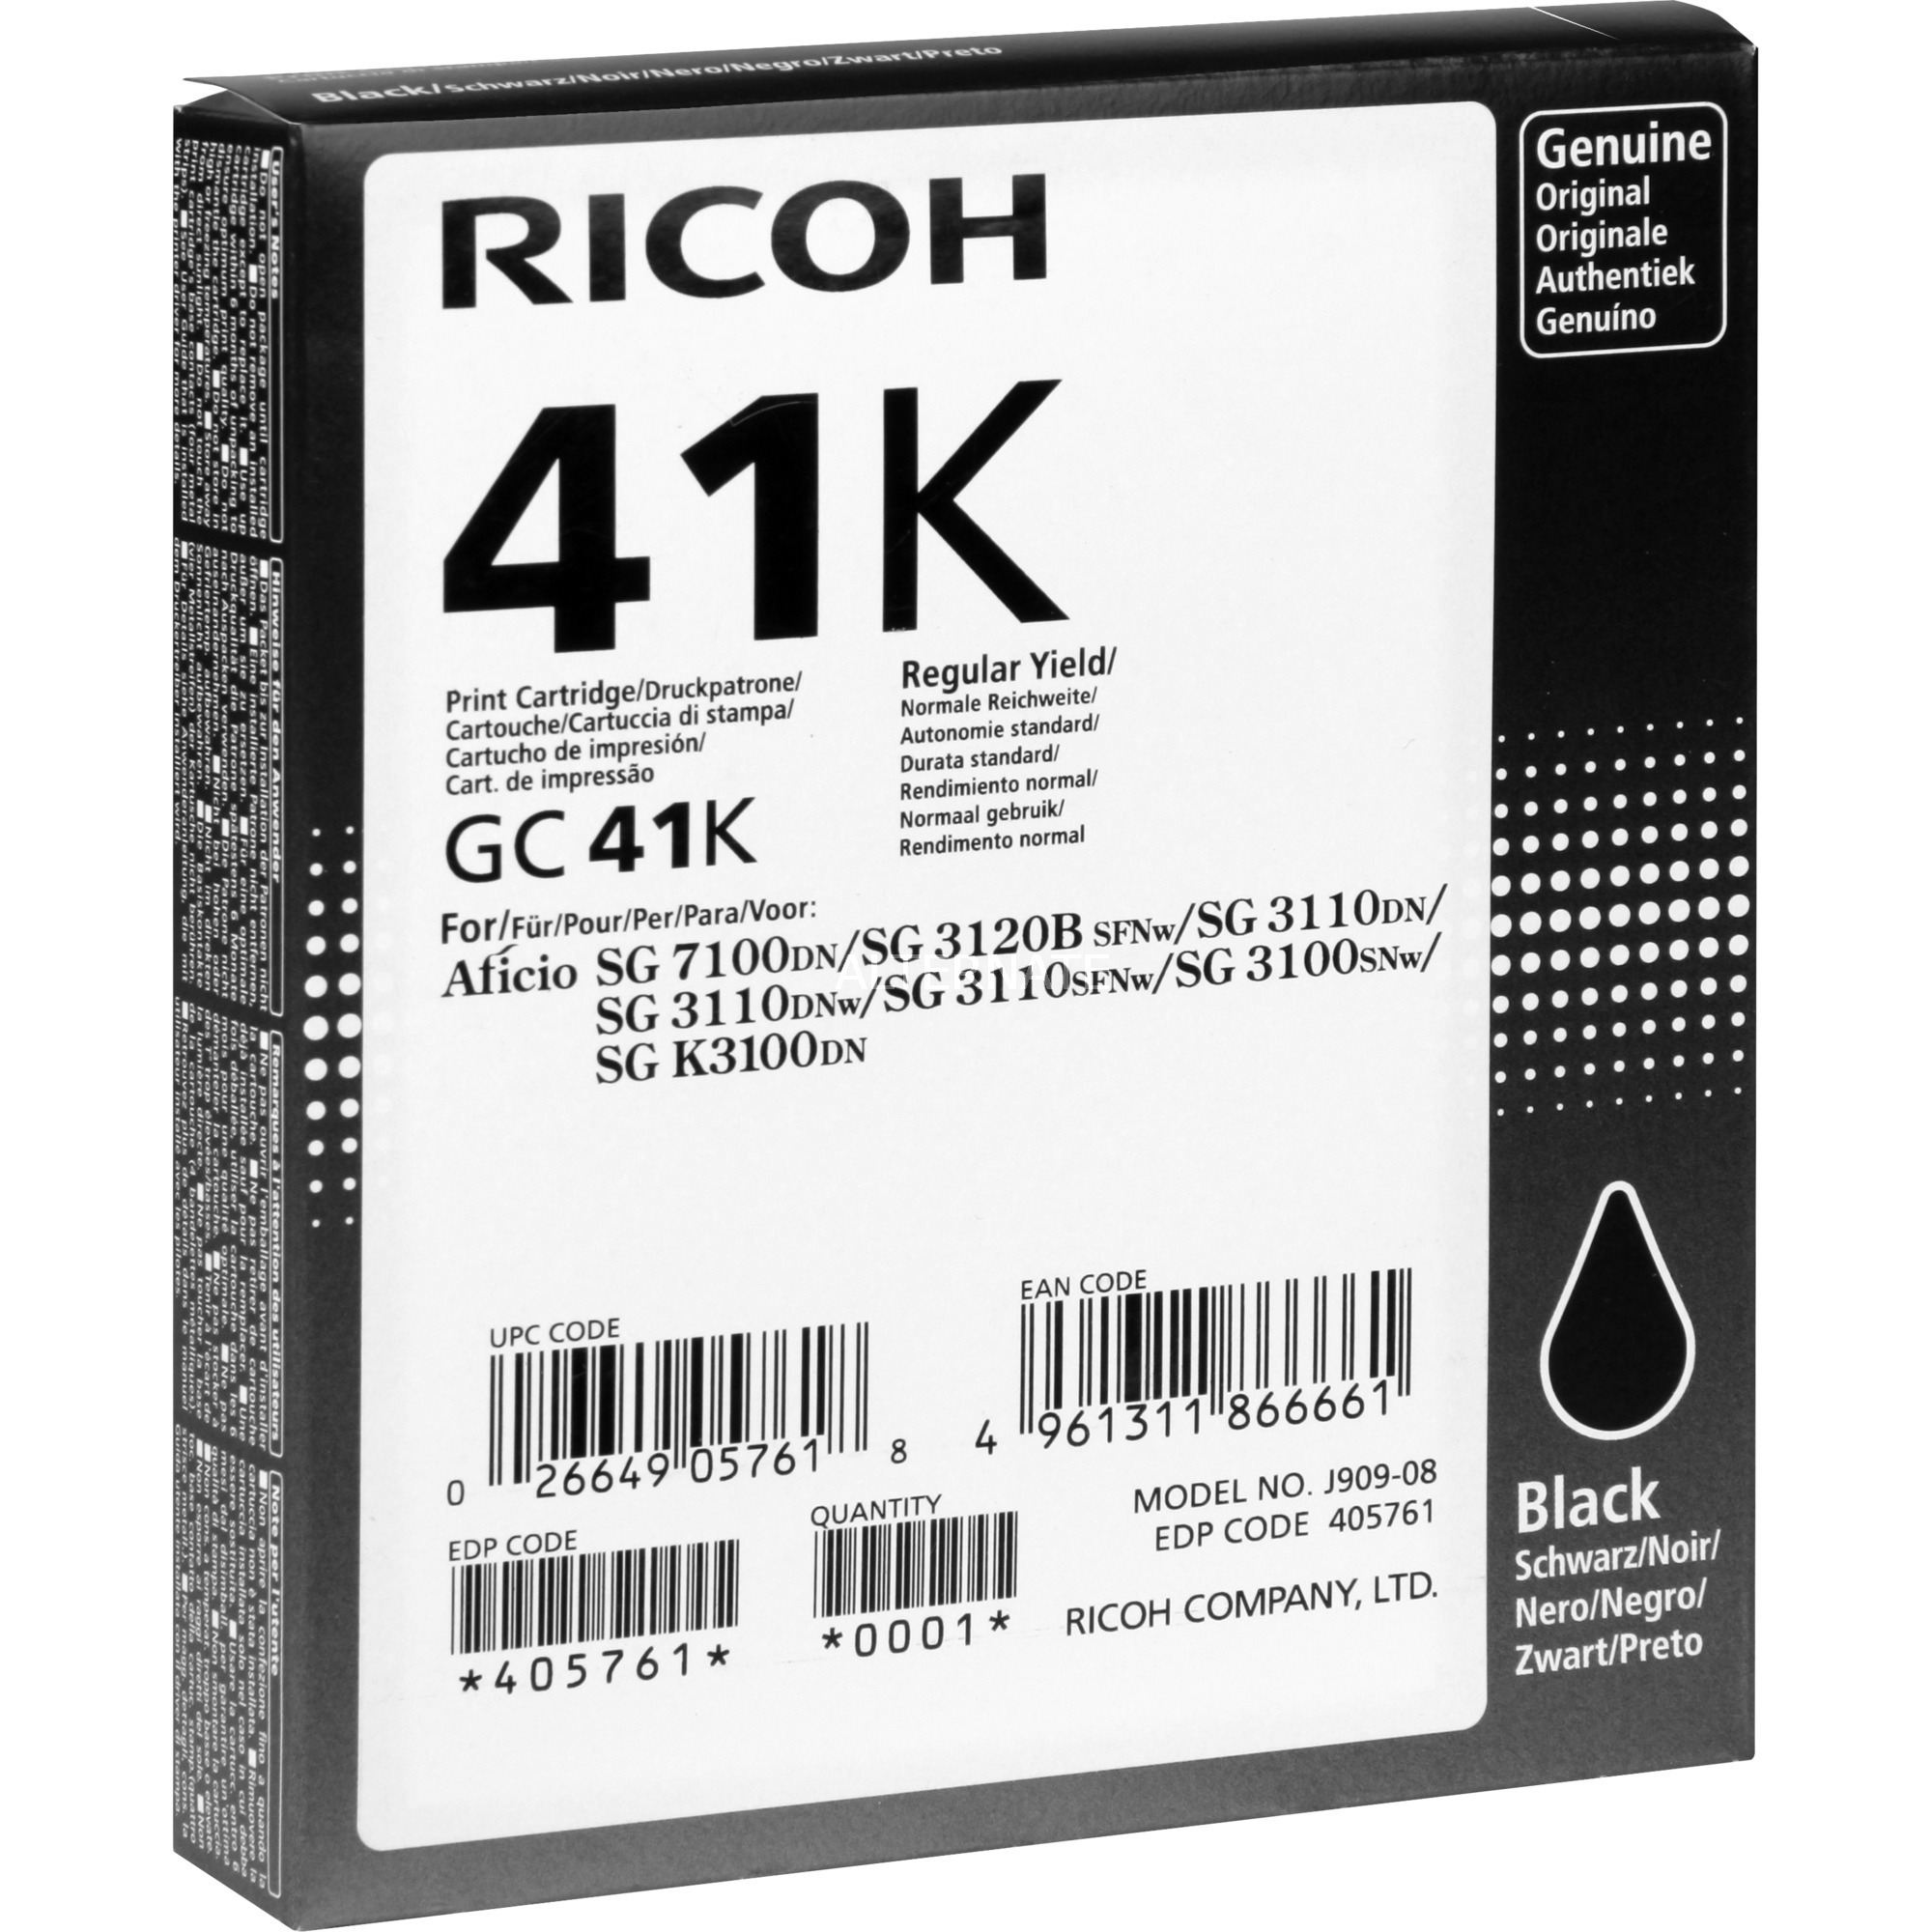 Ink Ricoh GC41K Black.jpg